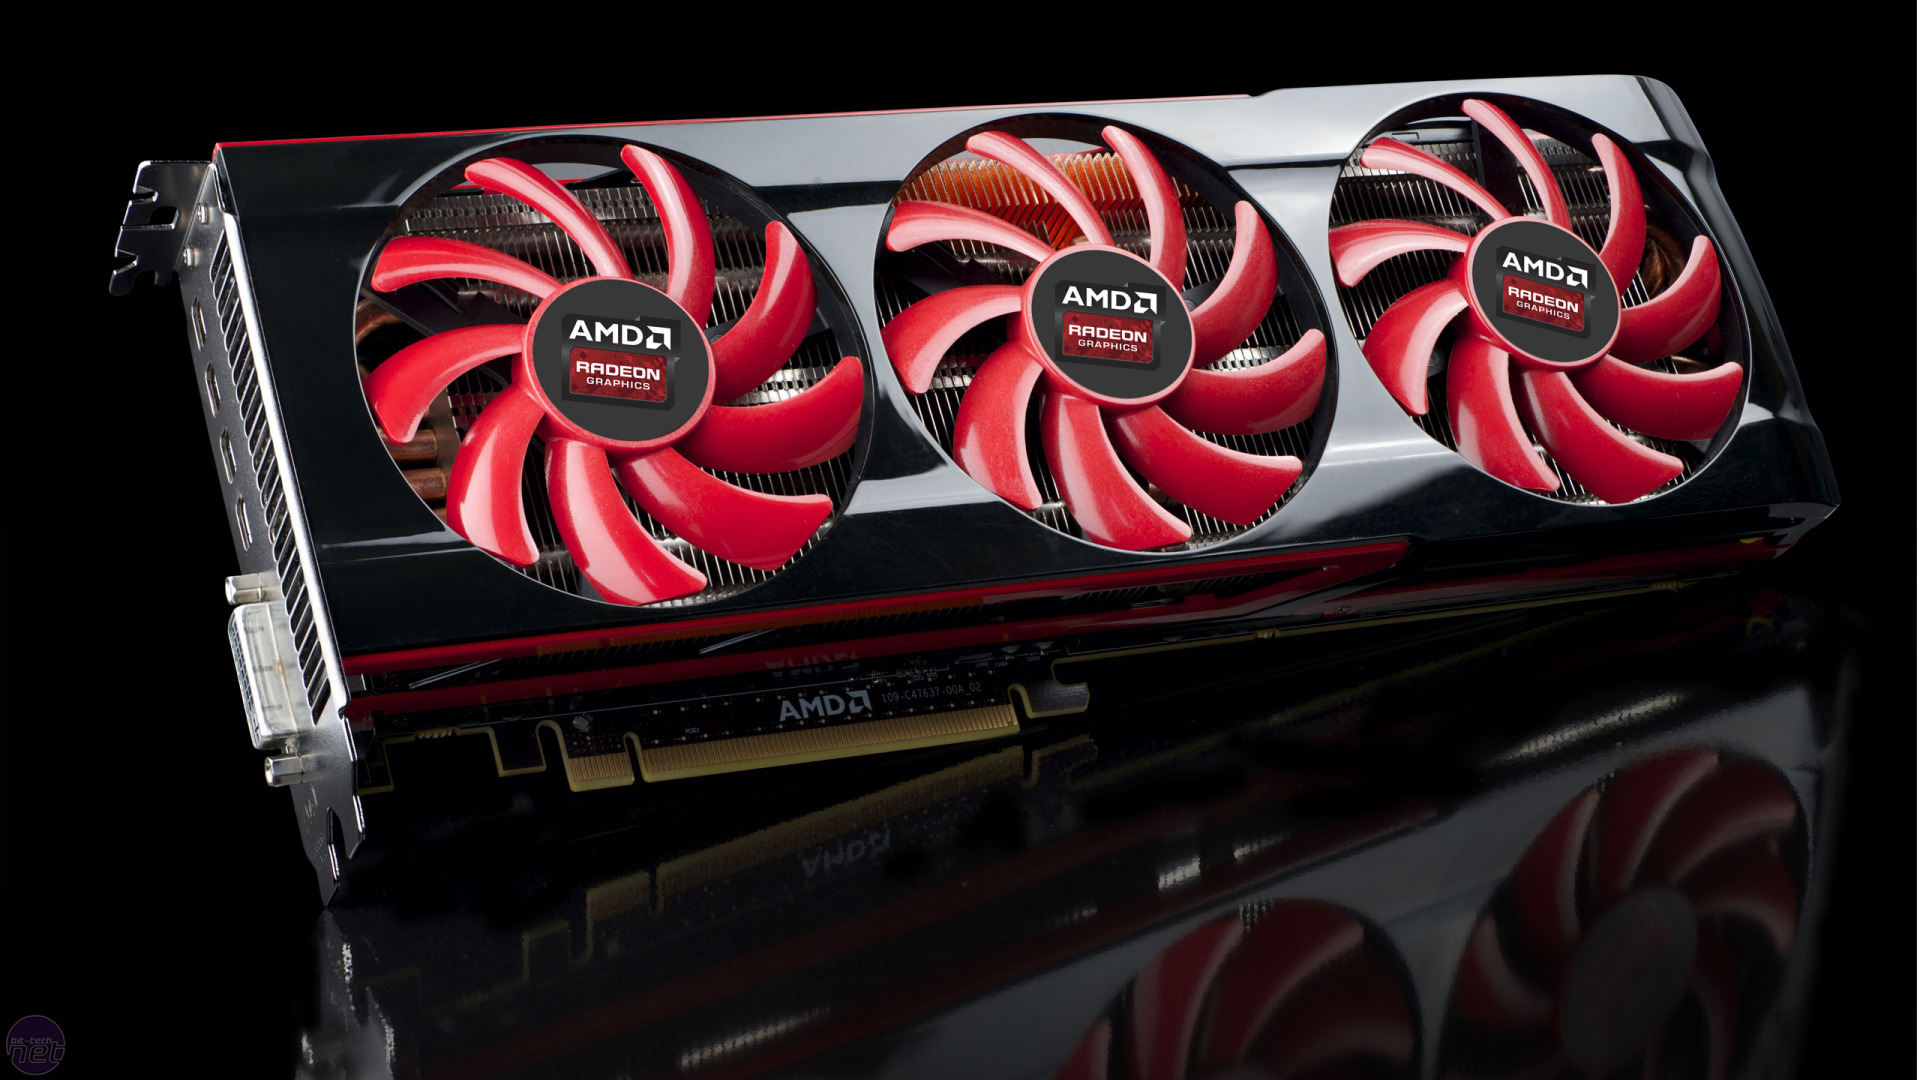 Amd wallpaper hd 6 1920 1080 pictures to pin on pinterest